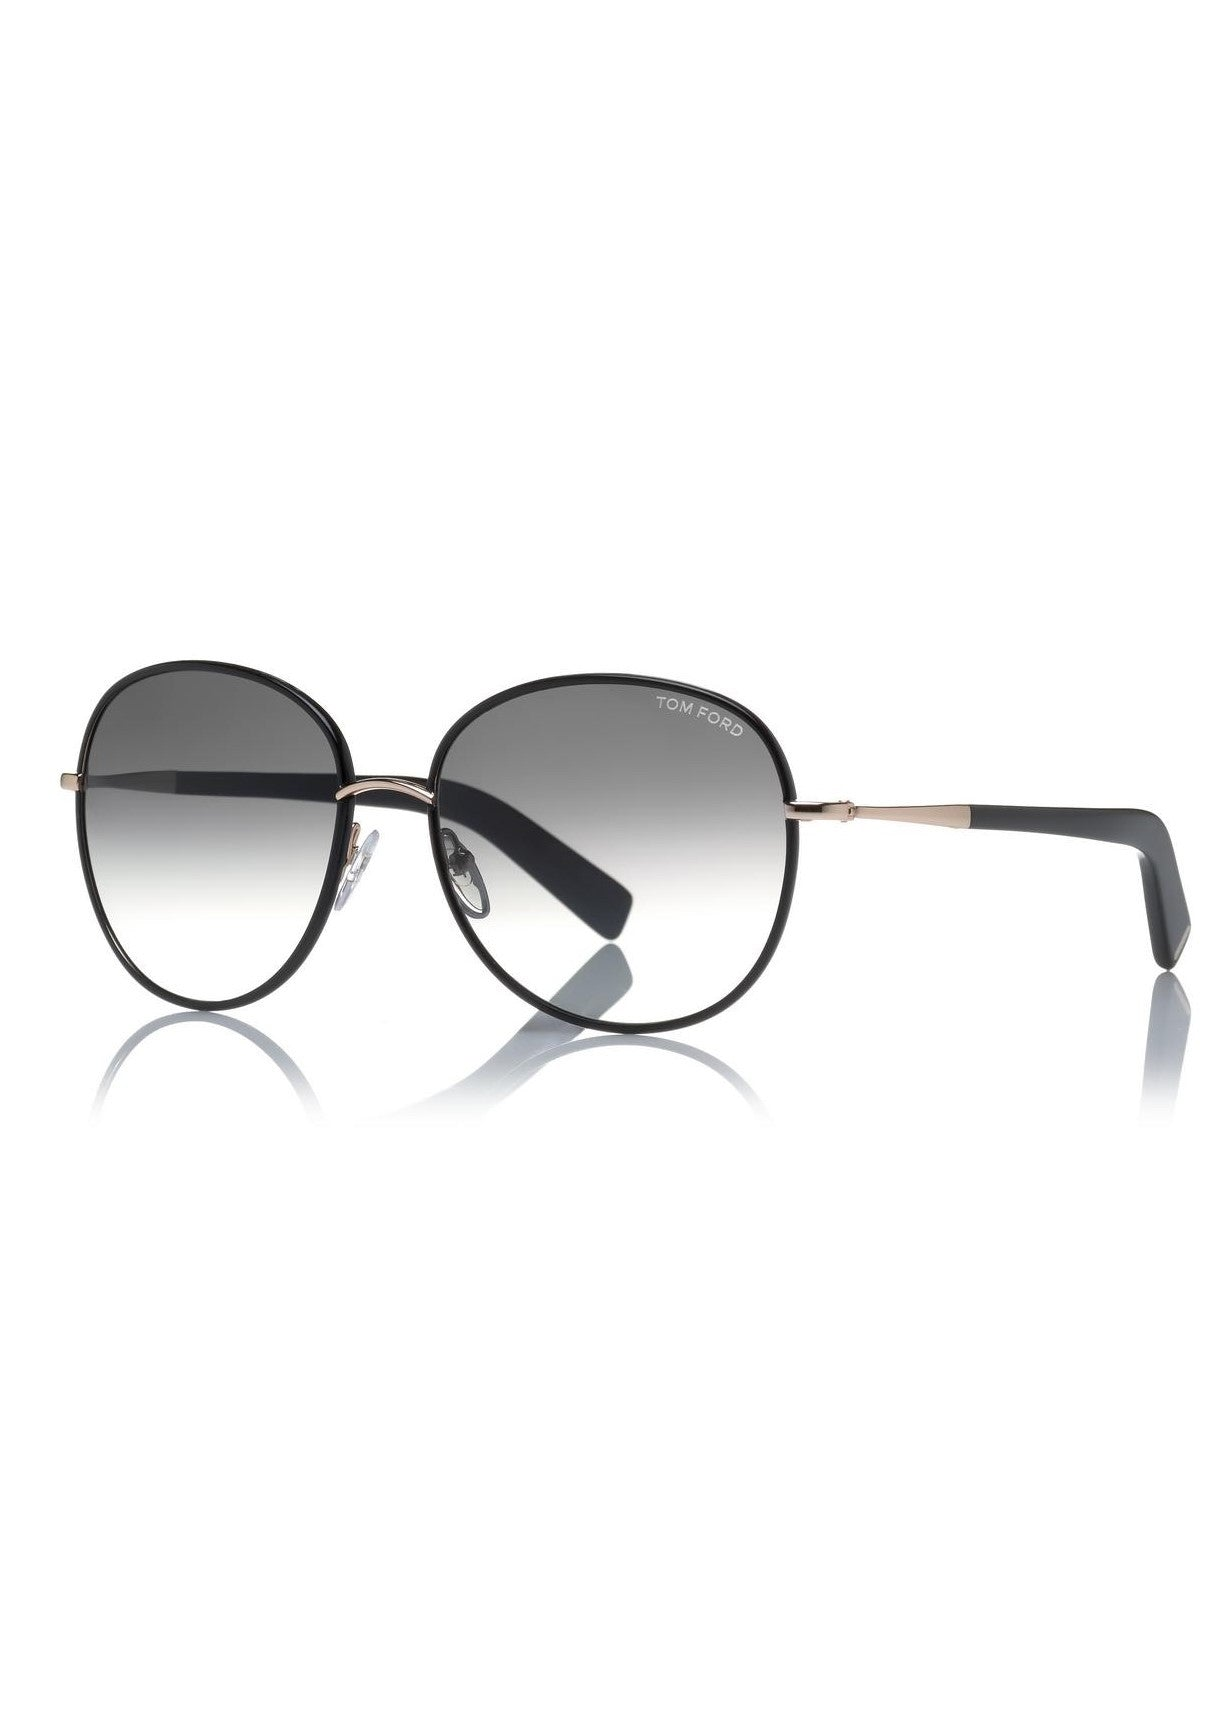 Tom Ford georgia sunglasses black